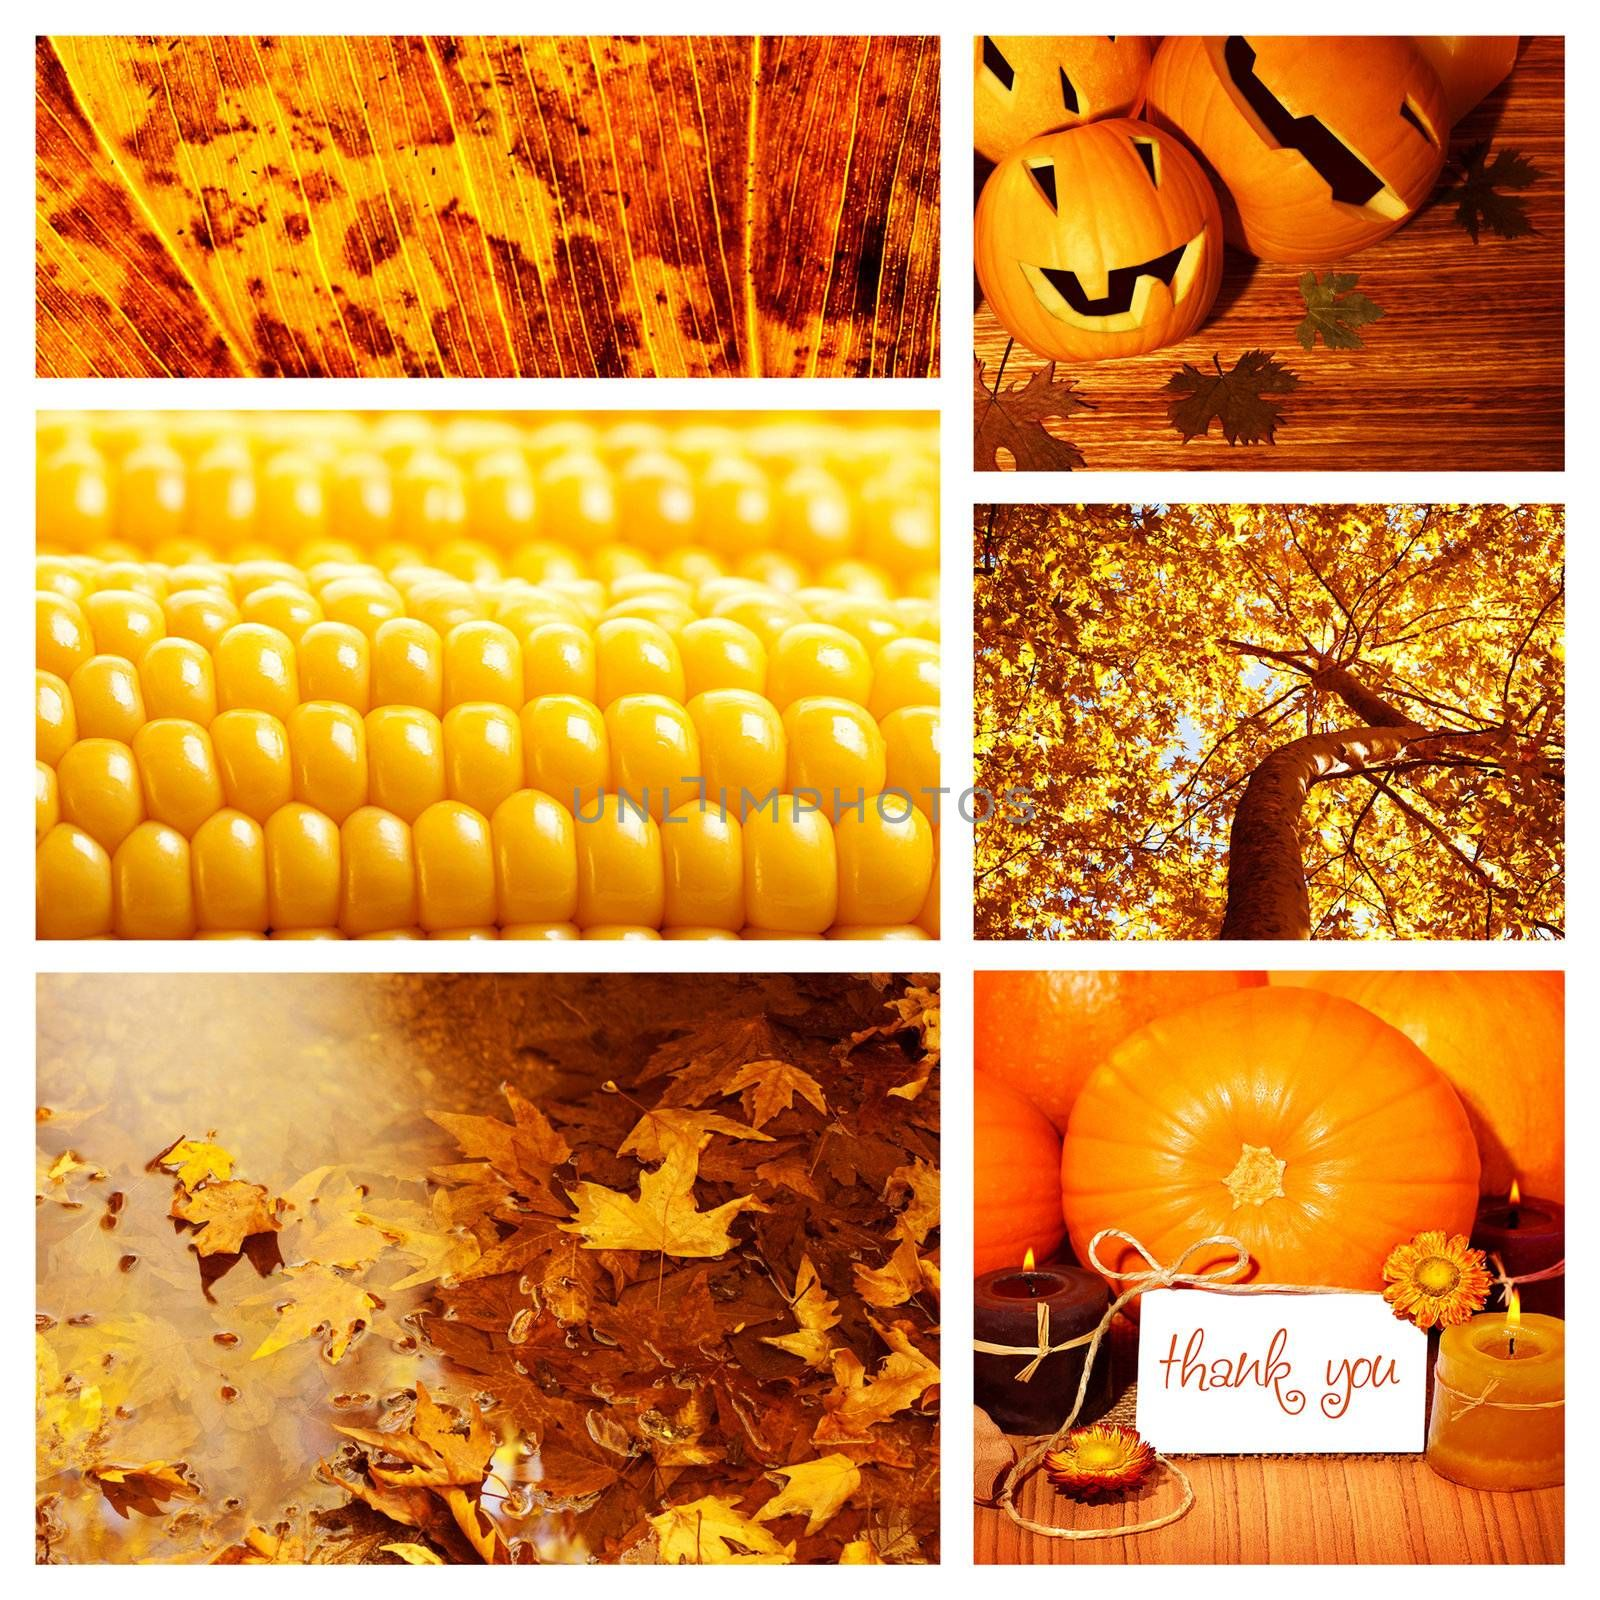 Photo of autumn season collage, autumnal dry foliage, sweet corn, thanksgiving day, pumpkin decoration, harvest season, fall forest, old orange leaves in water puddle, set of autumnal picture